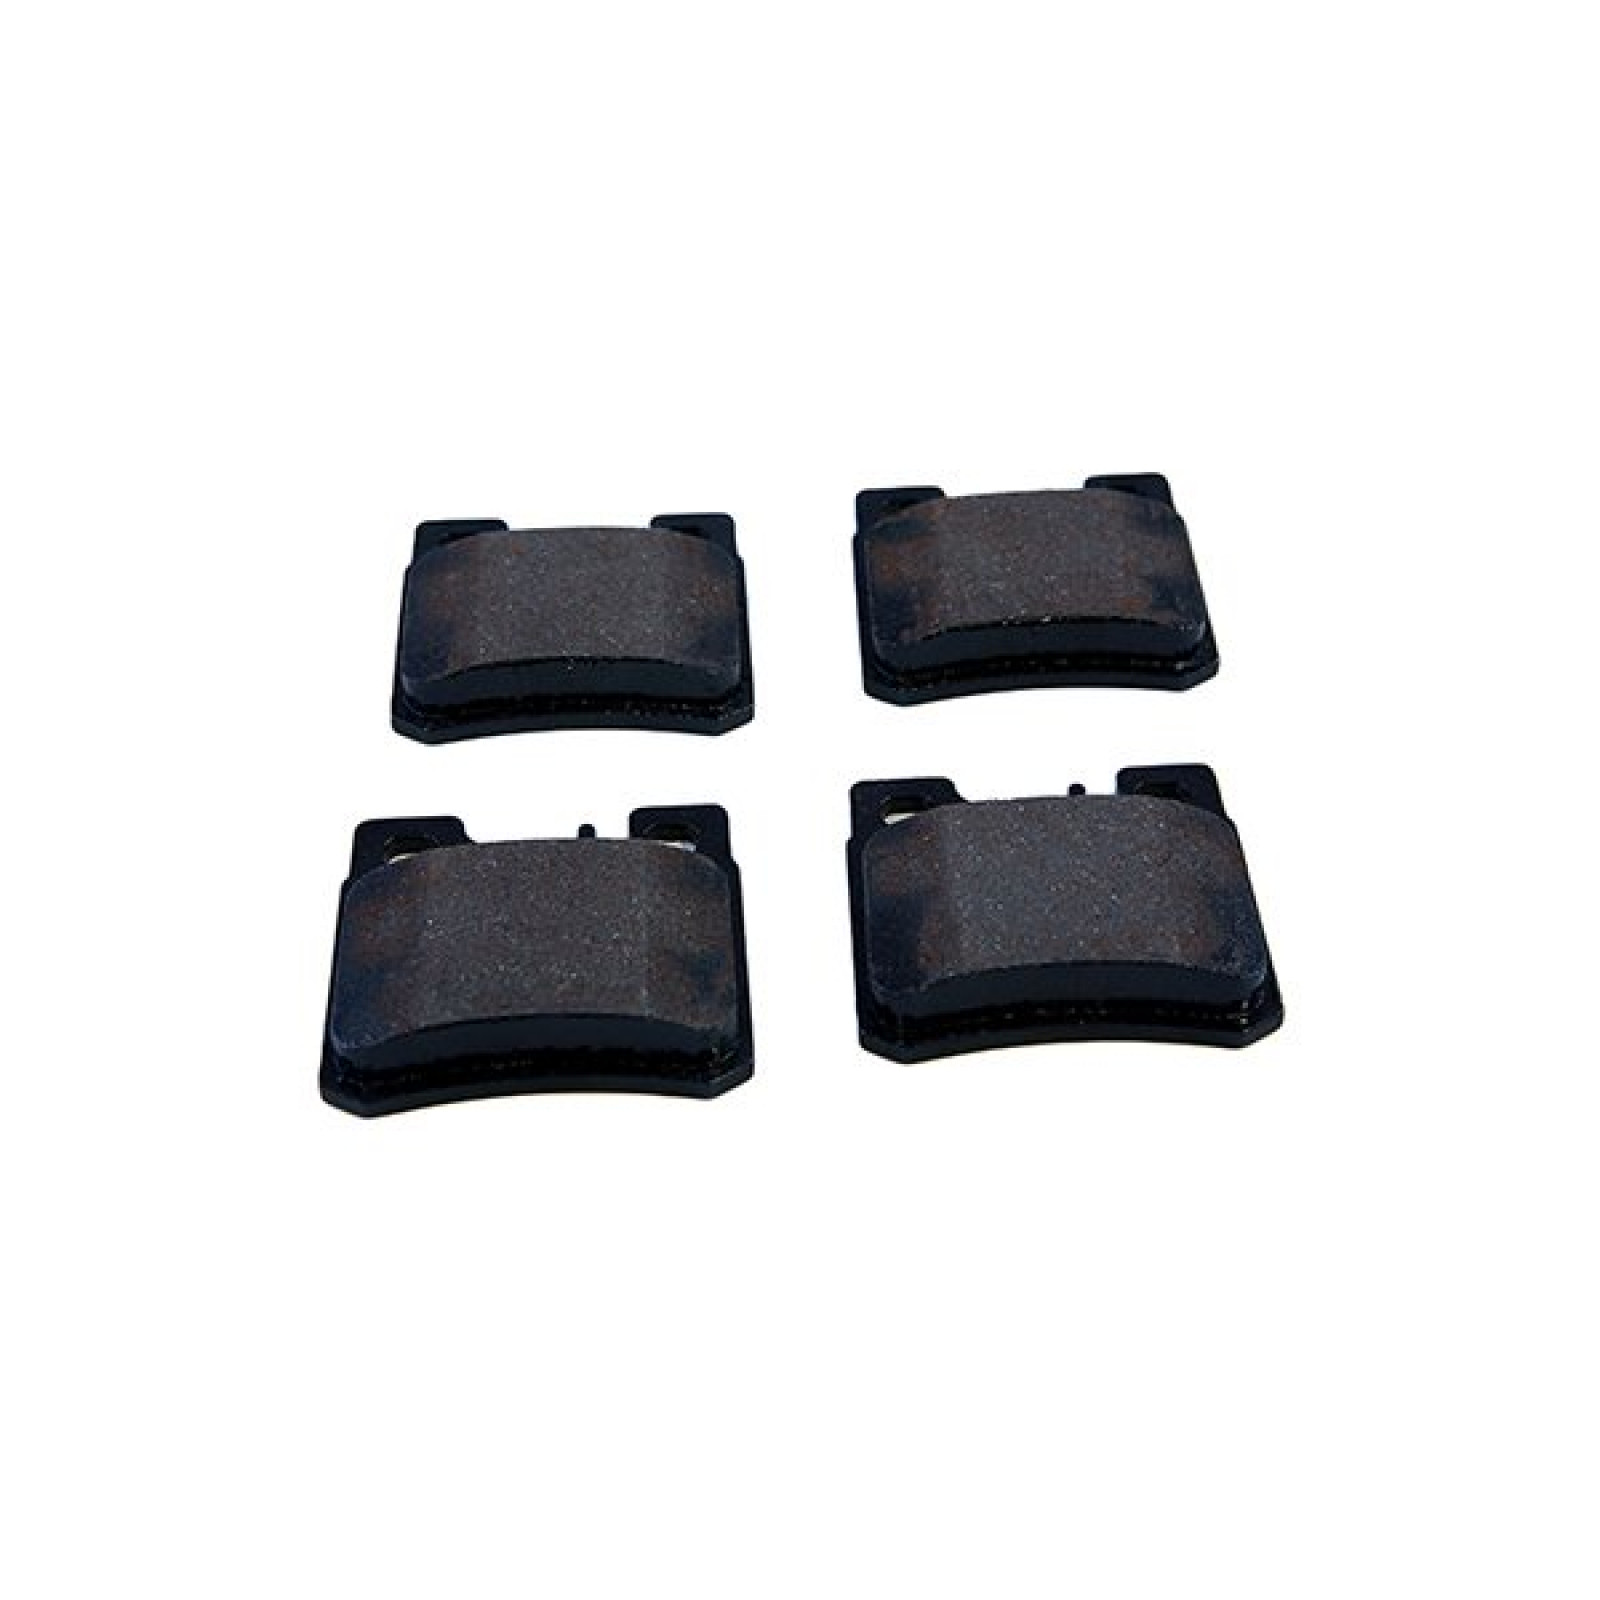 Mercedes benz sl 129 rear brake pads 0054201720 the sl shop for Mercedes benz rotors and pads